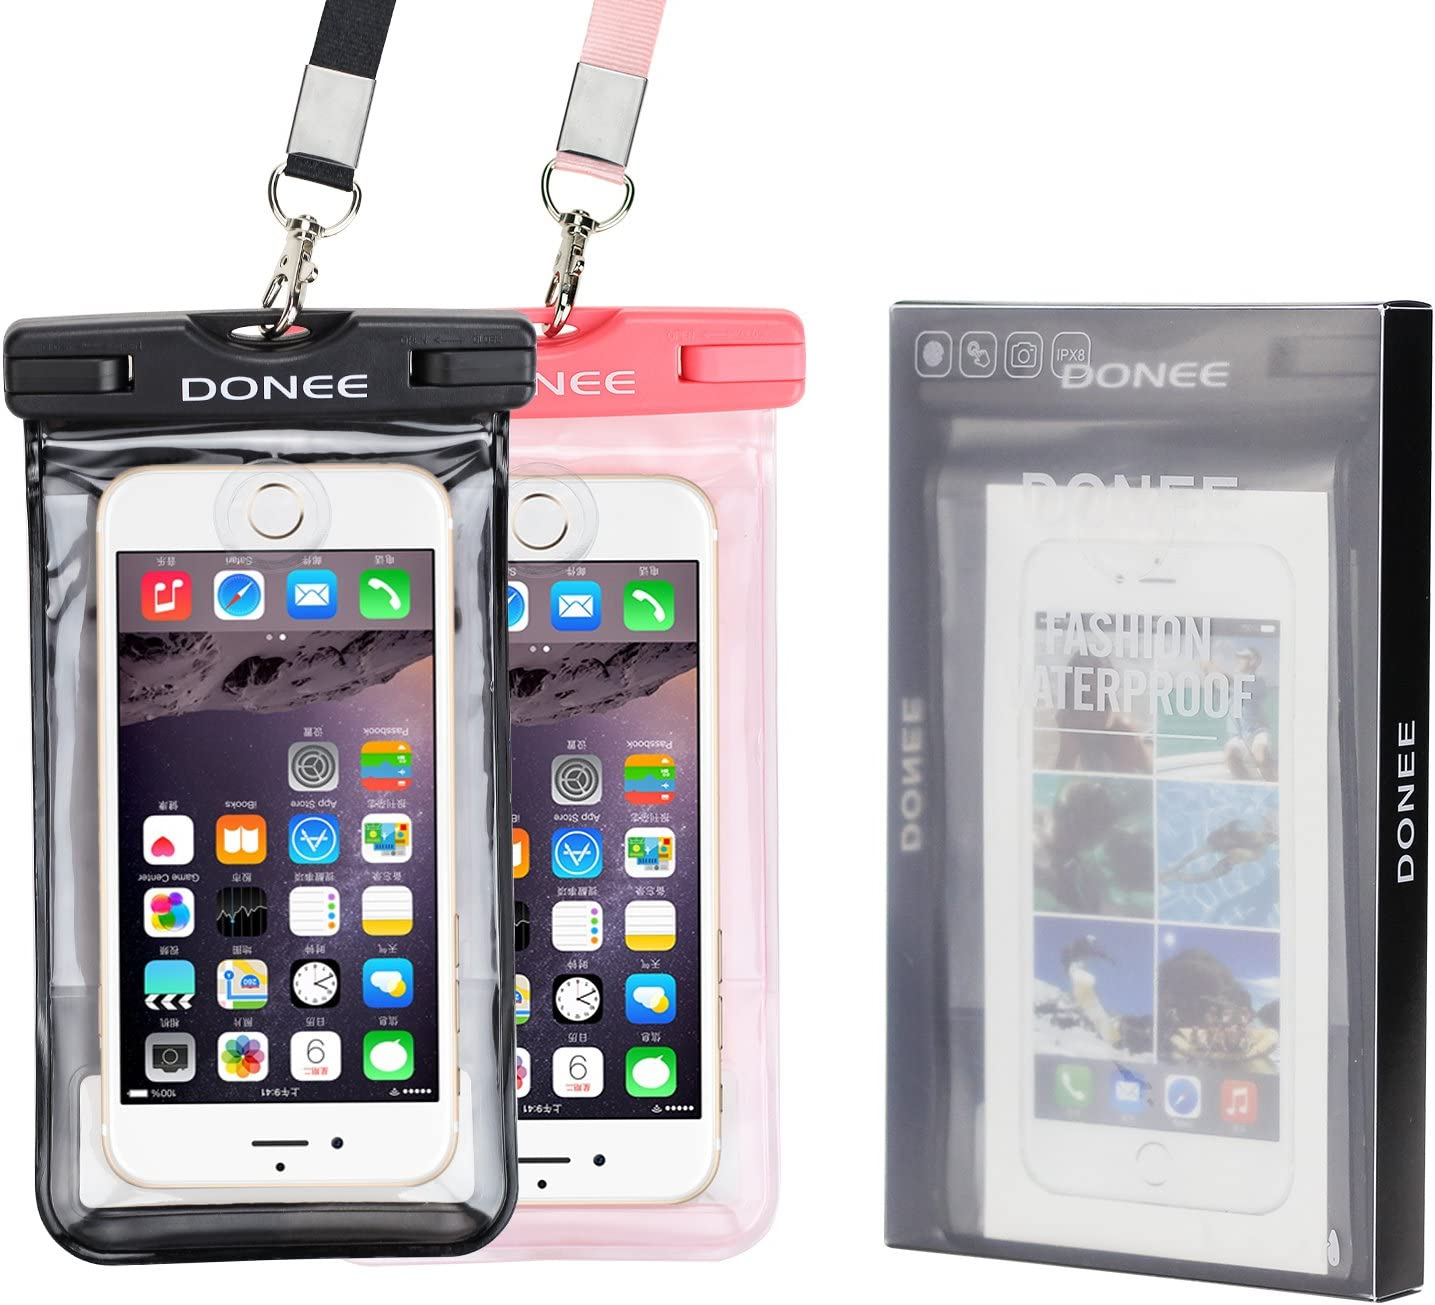 DONEE Universal Waterproof Case, IPX8 Cellphone Dry case Pouch with Sensitive PVC Touch Screen for Smart phonr up to 6.5 inch